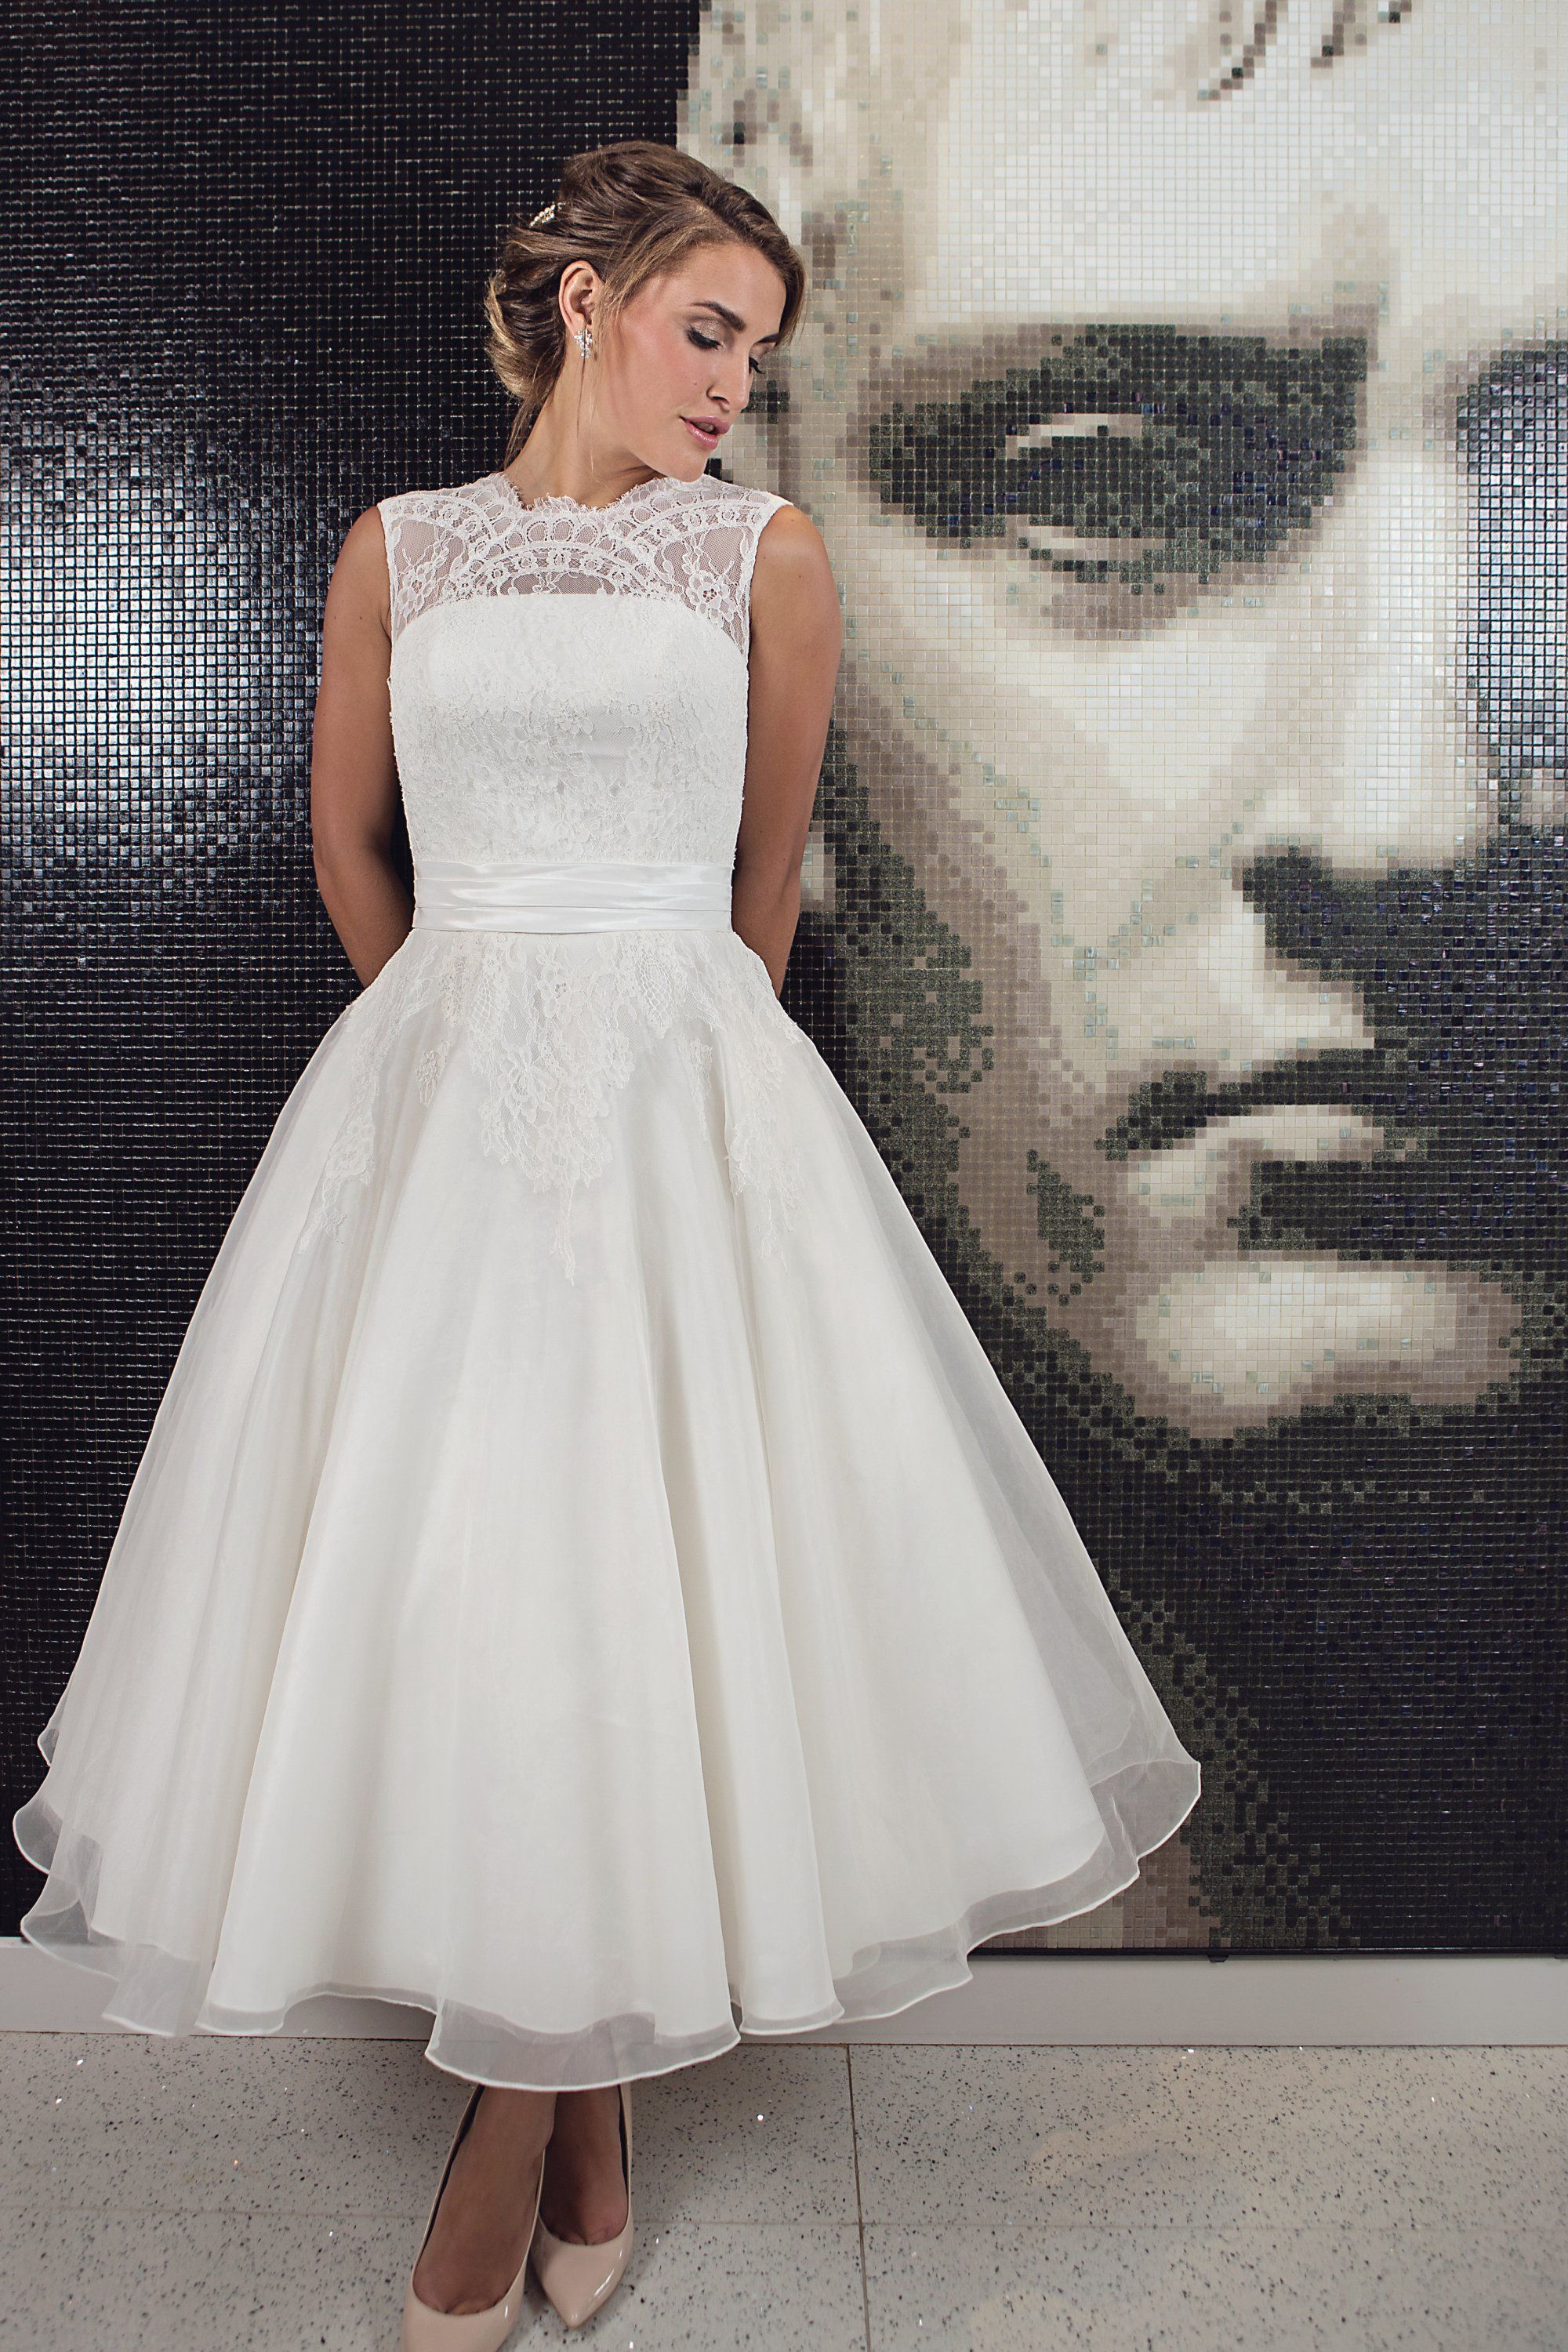 Style 2105 | I\'M THE BRIDE. | Pinterest | Brautkleider, Brautkleid ...